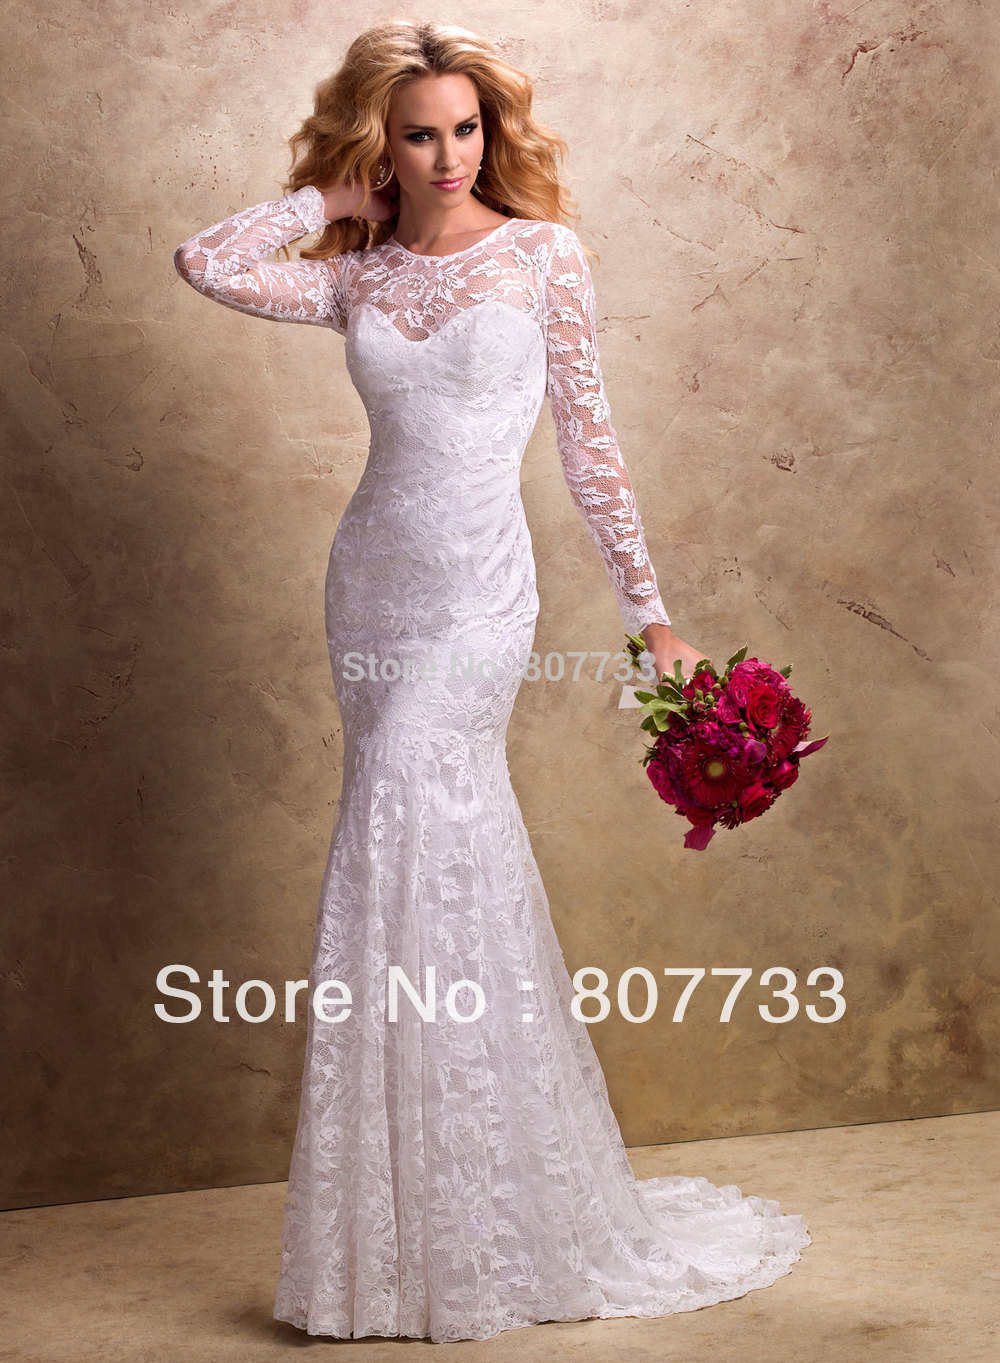 wedding dress with sleeves hairstyle question sleeved wedding dresses Wedding dress with sleeves hairstyle question